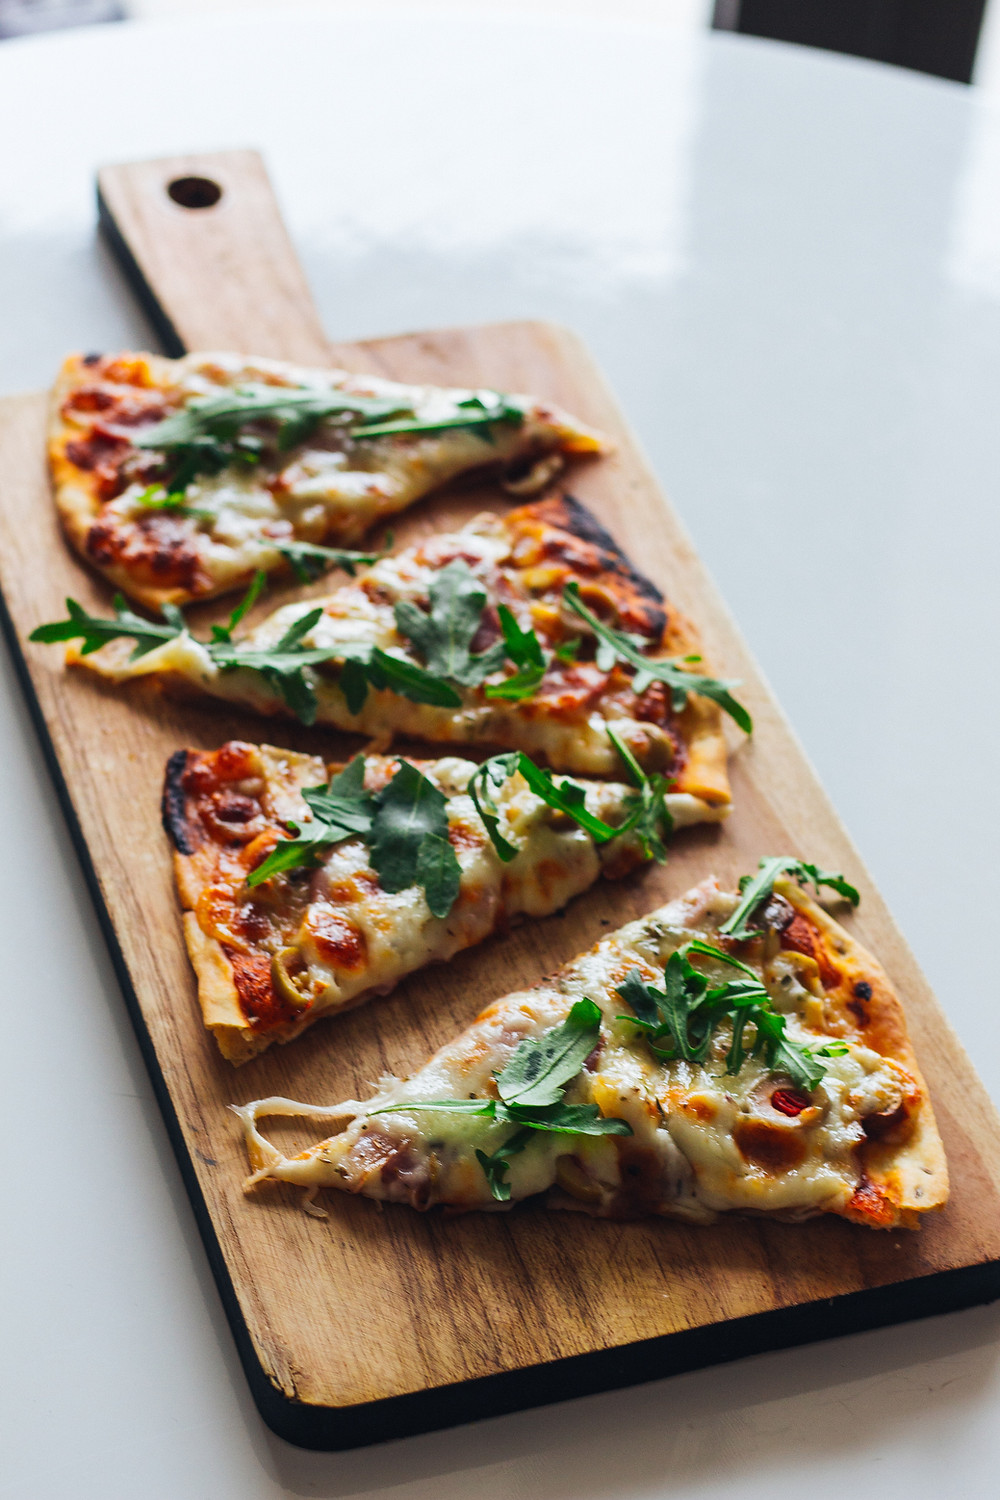 Four slices of vegetarian pizza on a cutting board